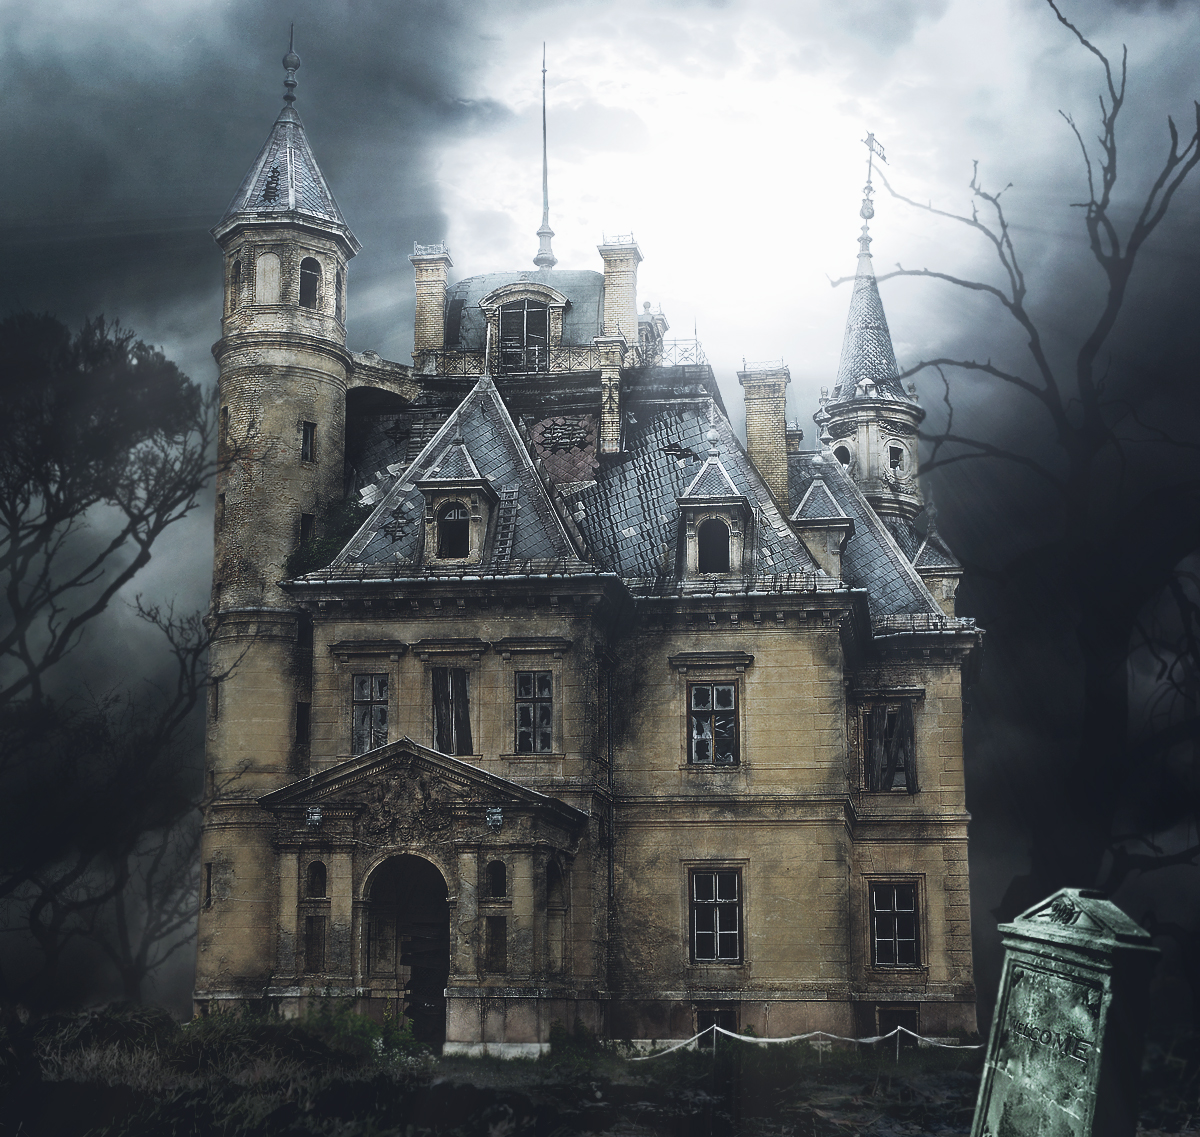 Spooky Mansion by RiDDiKK